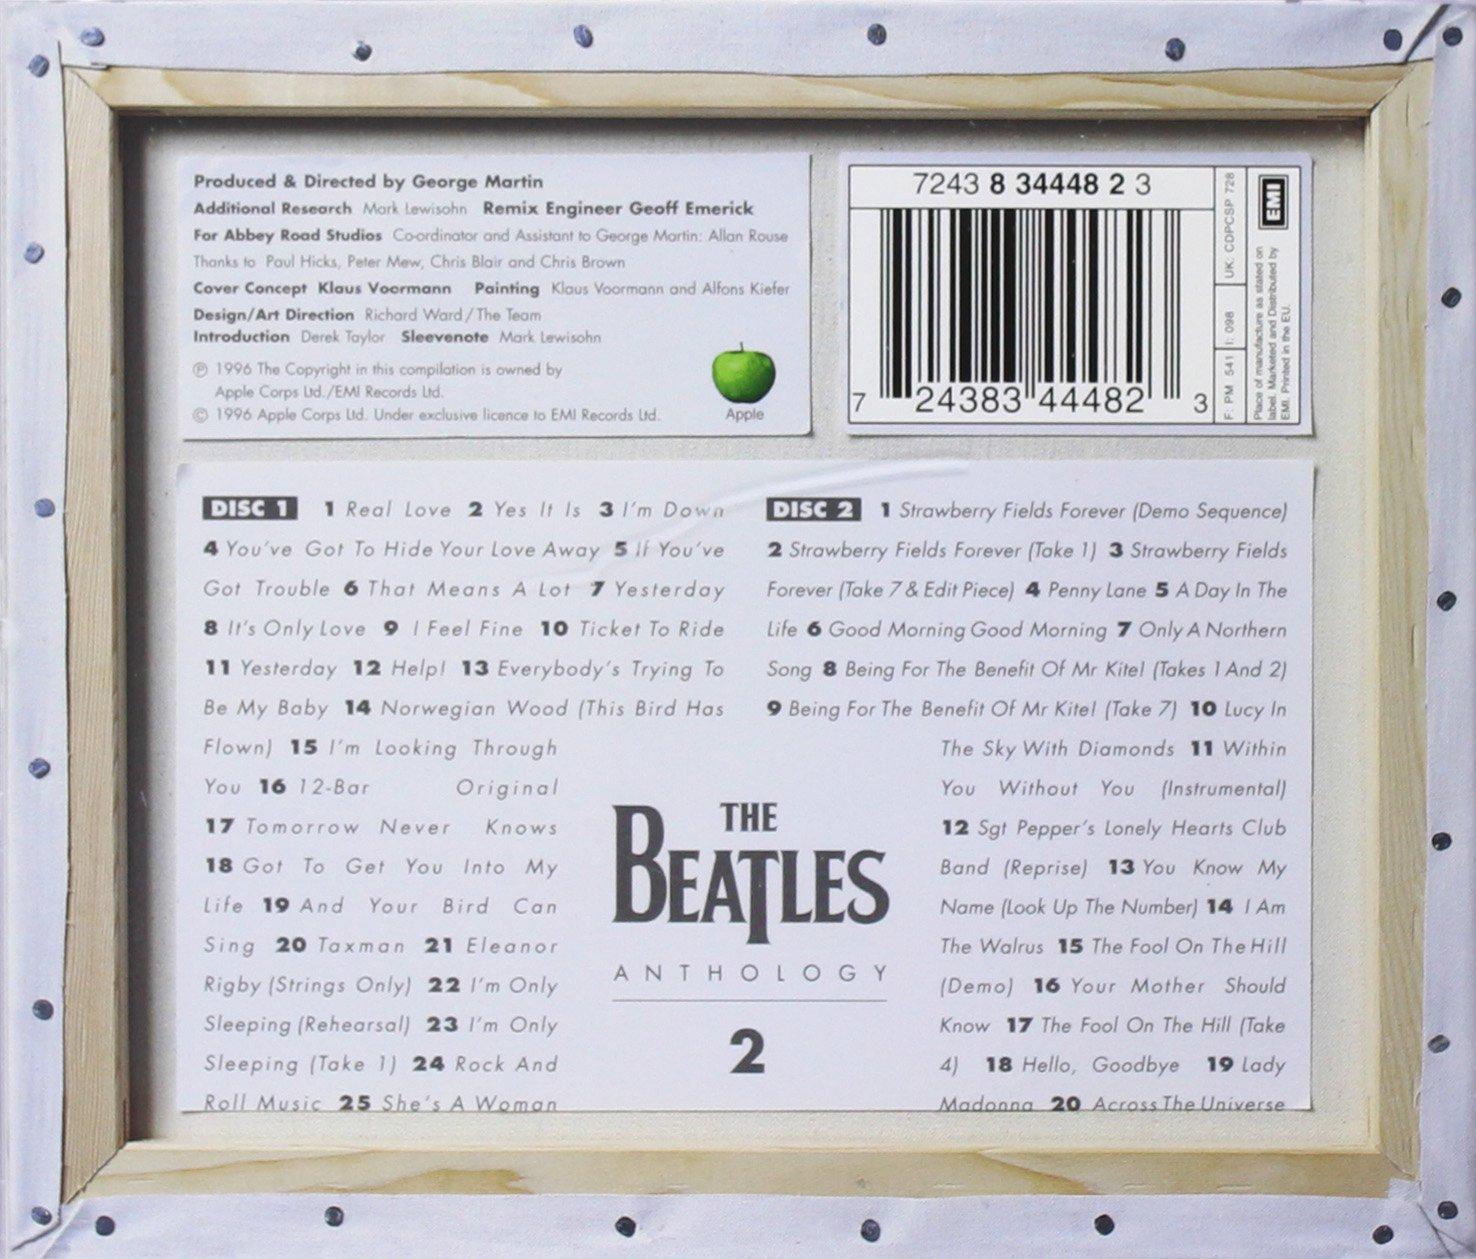 ticket to ride song song lyrics the beatles ticket to ride vid  the beatles anthology com music com ticket to ride